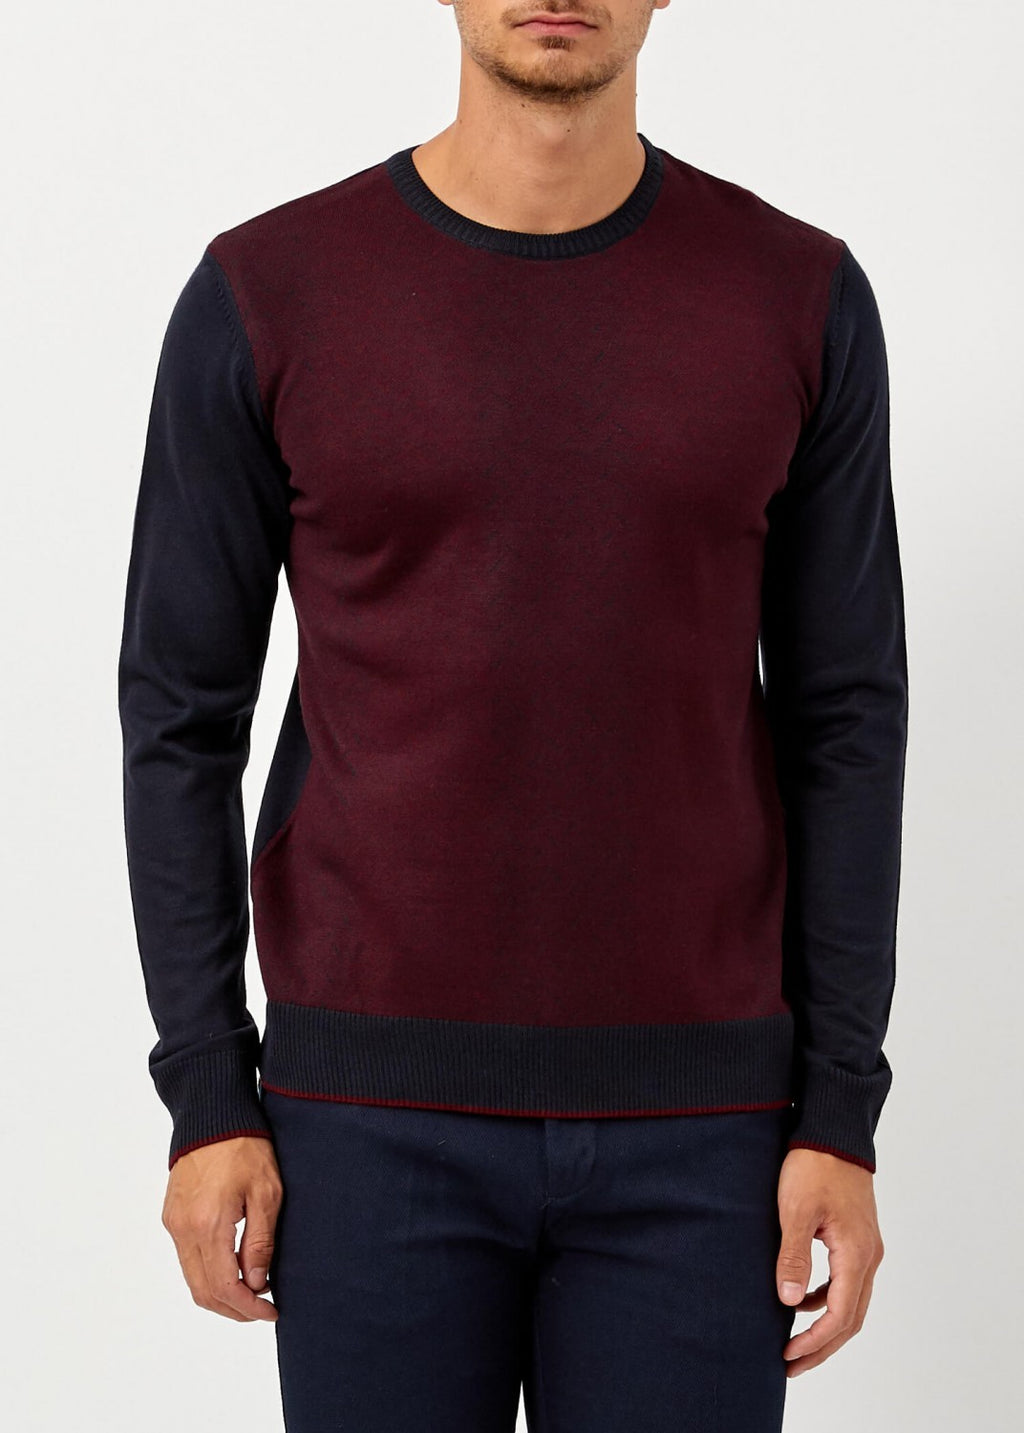 Men's Maroon Winter Wool Pullover - THE UNIQUE FIT